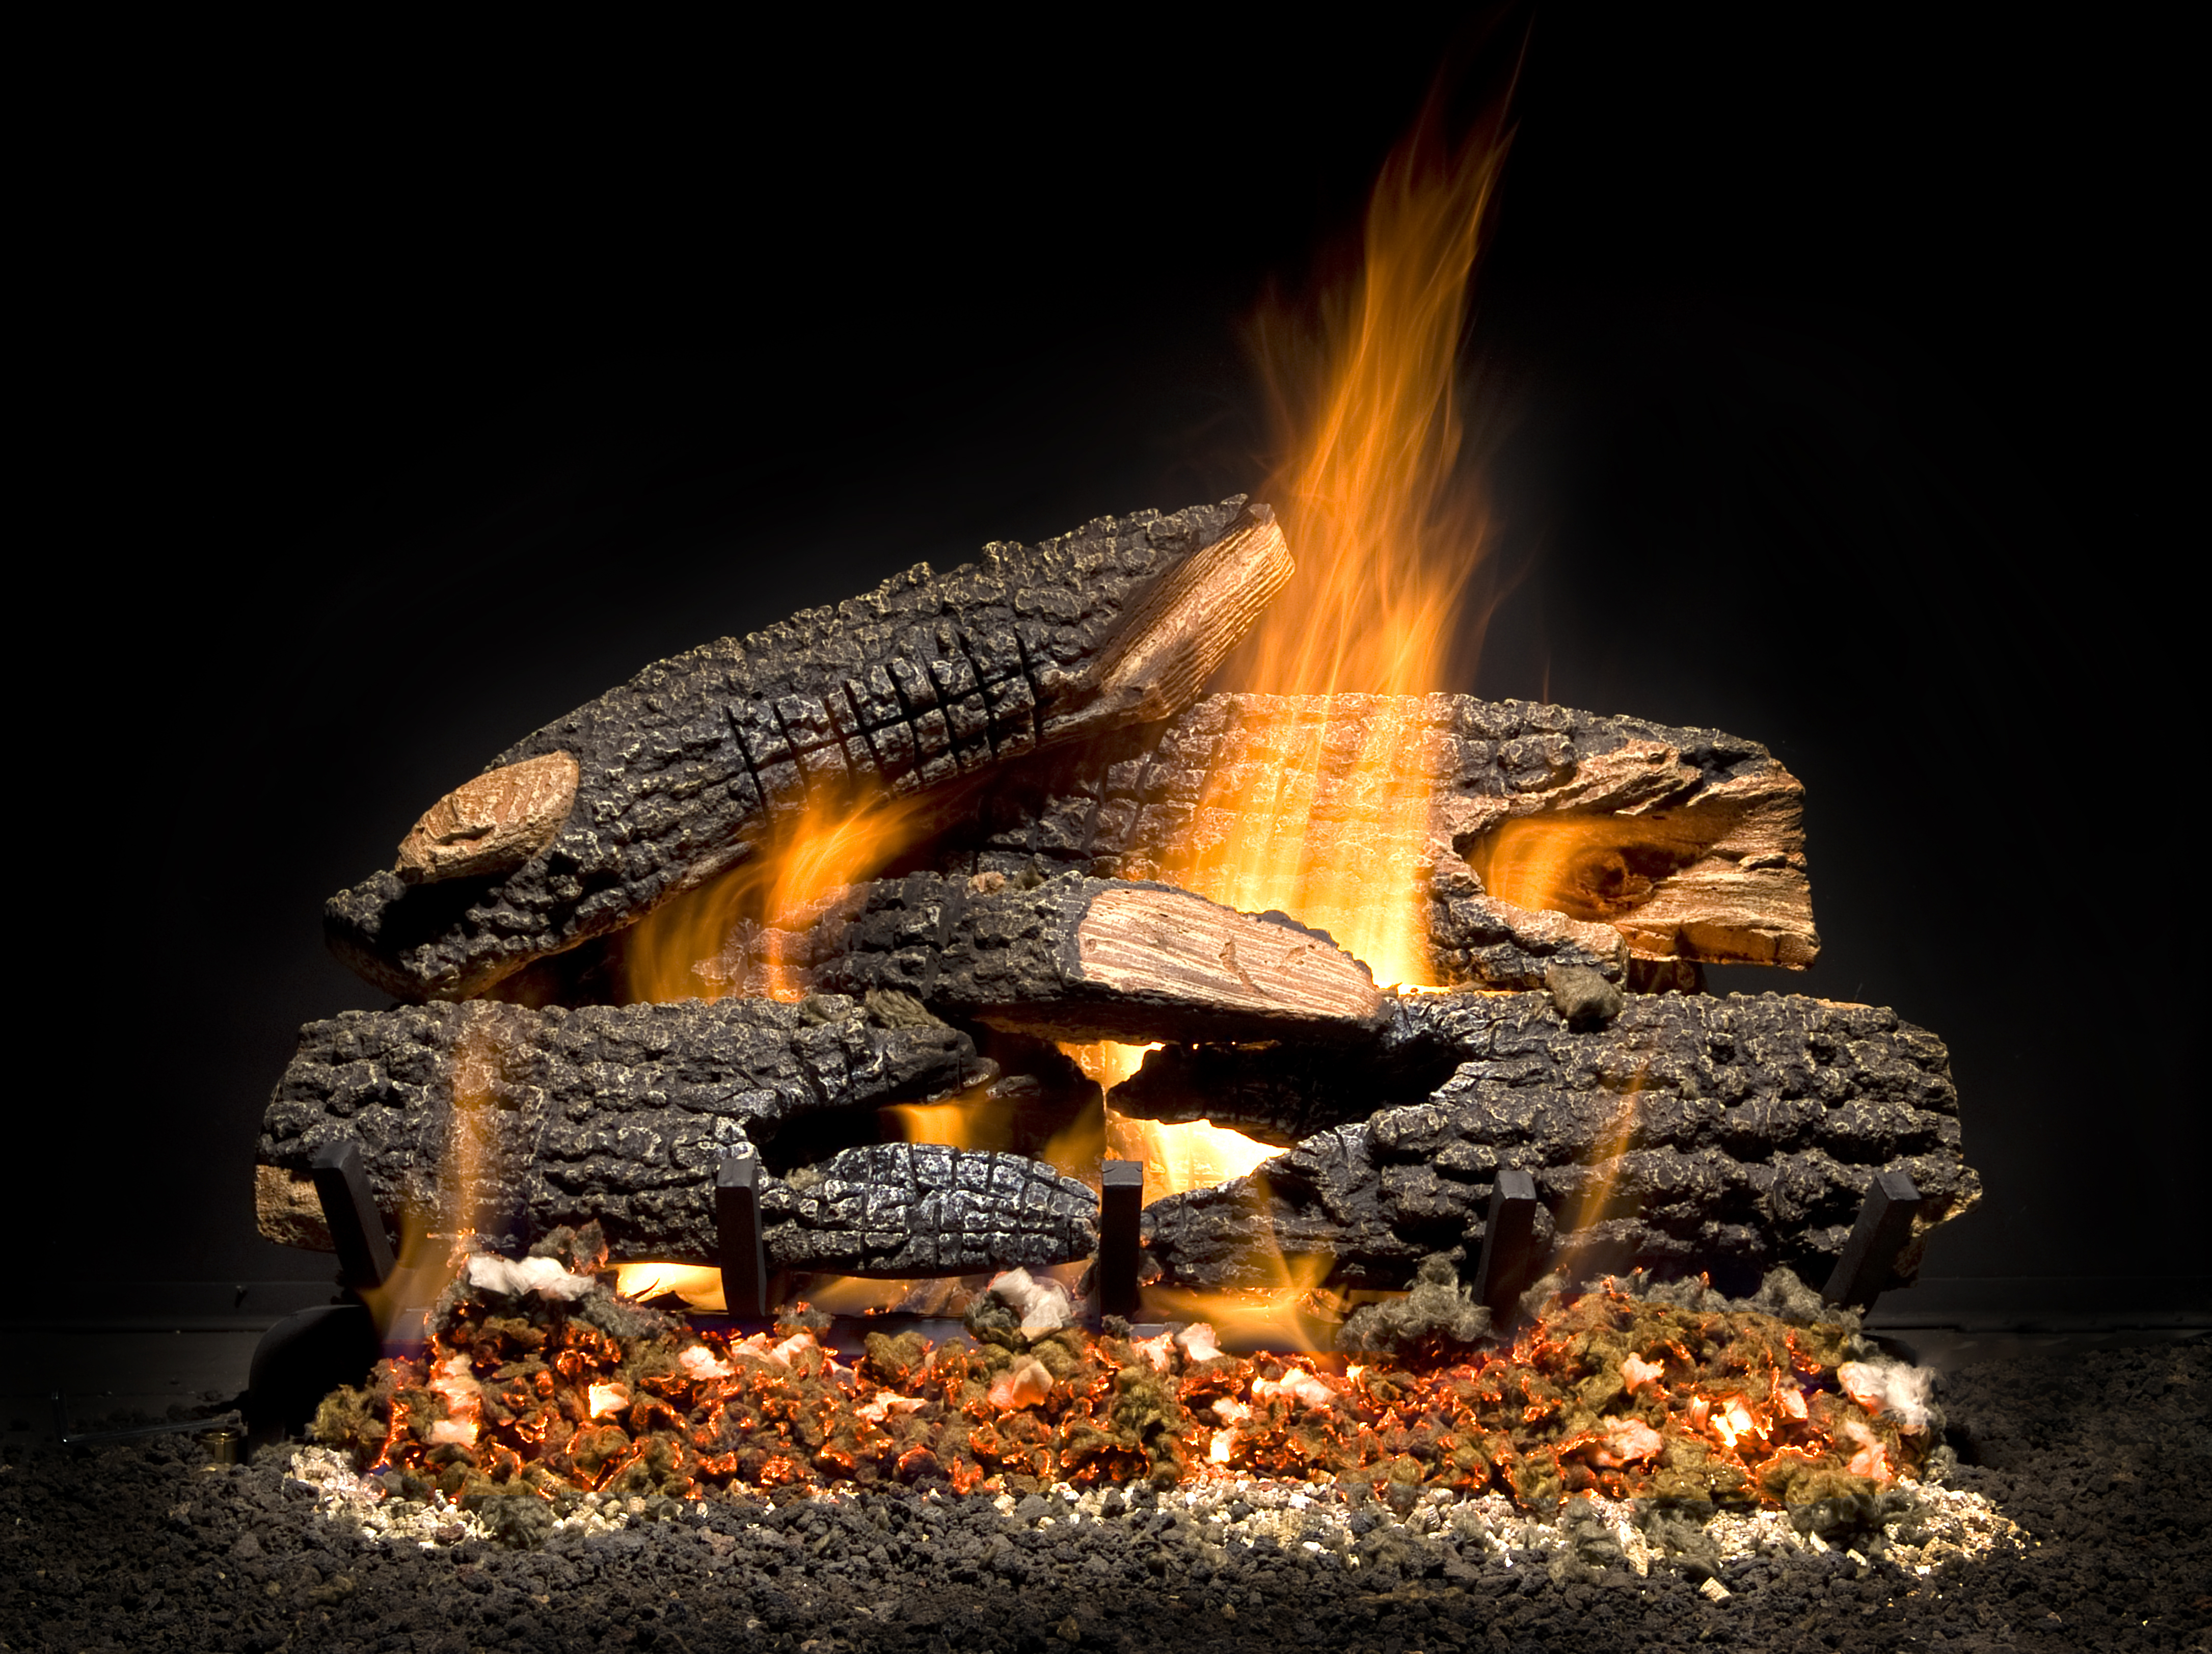 Ceramic Logs For Gas Fireplace Welcome Golden Blount Incgolden Blount Inc